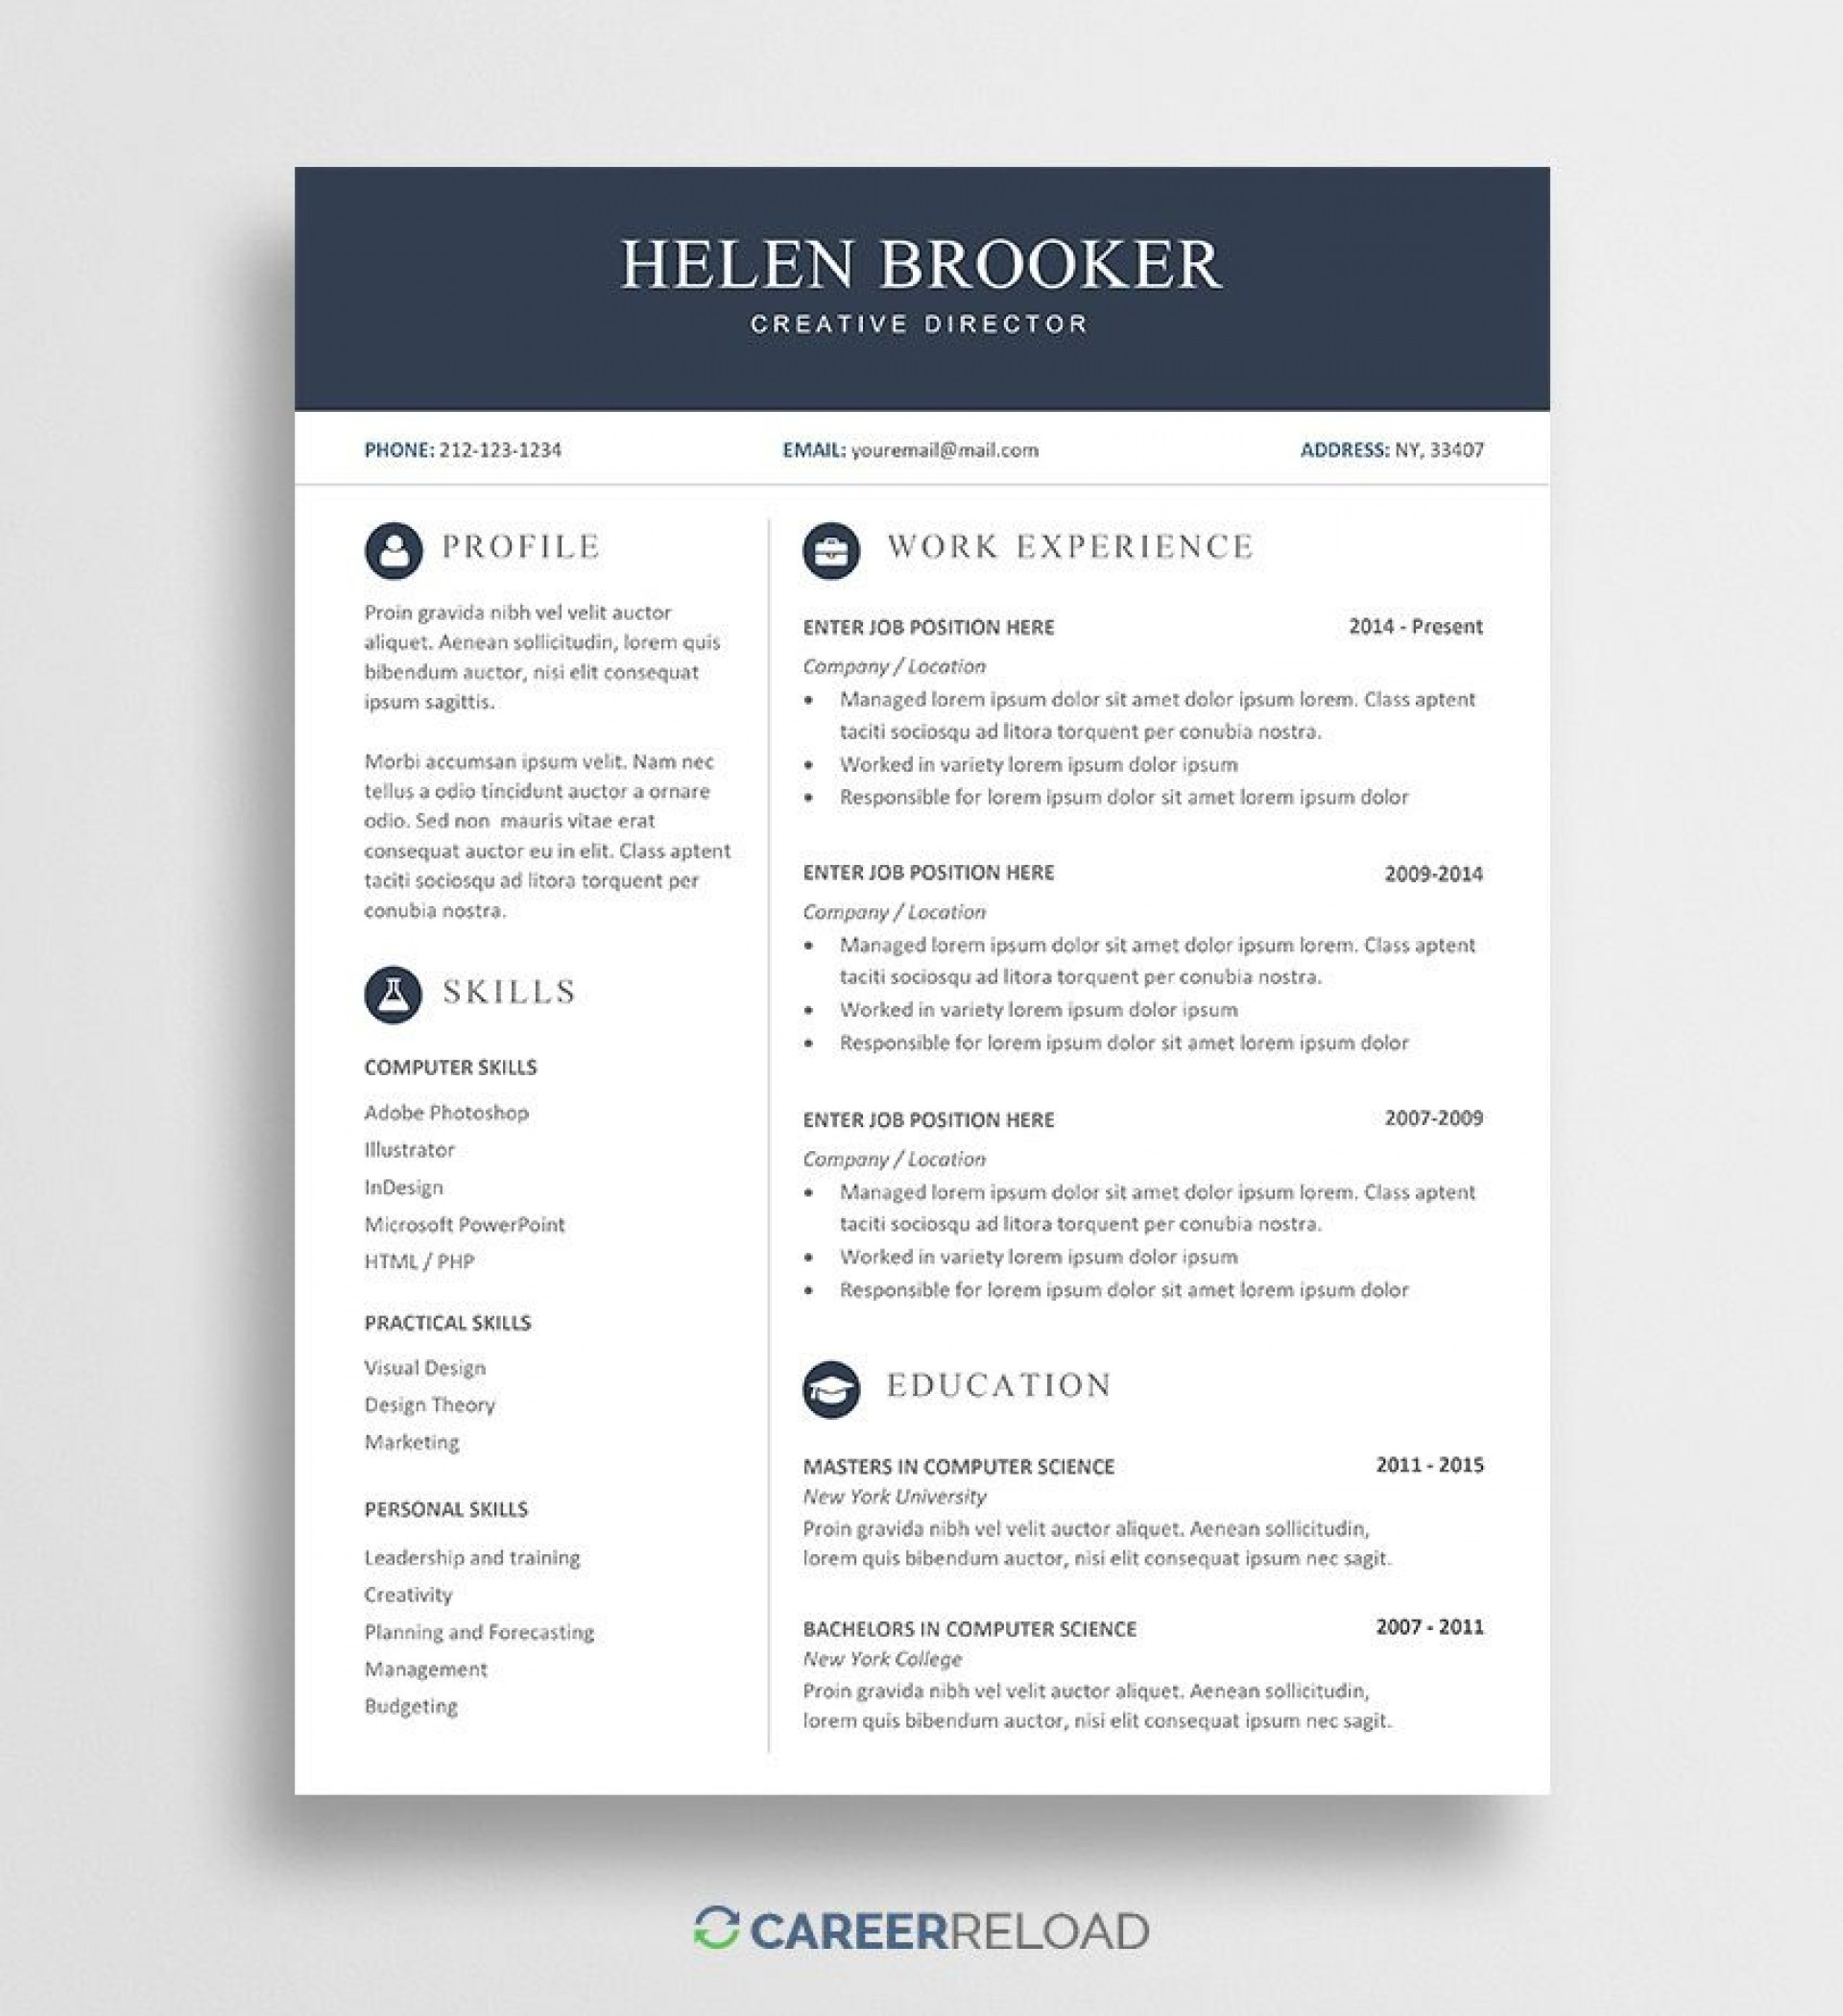 006 Phenomenal Resume Template Free Word Download Highest Quality  Cv With Photo Malaysia Australia1920